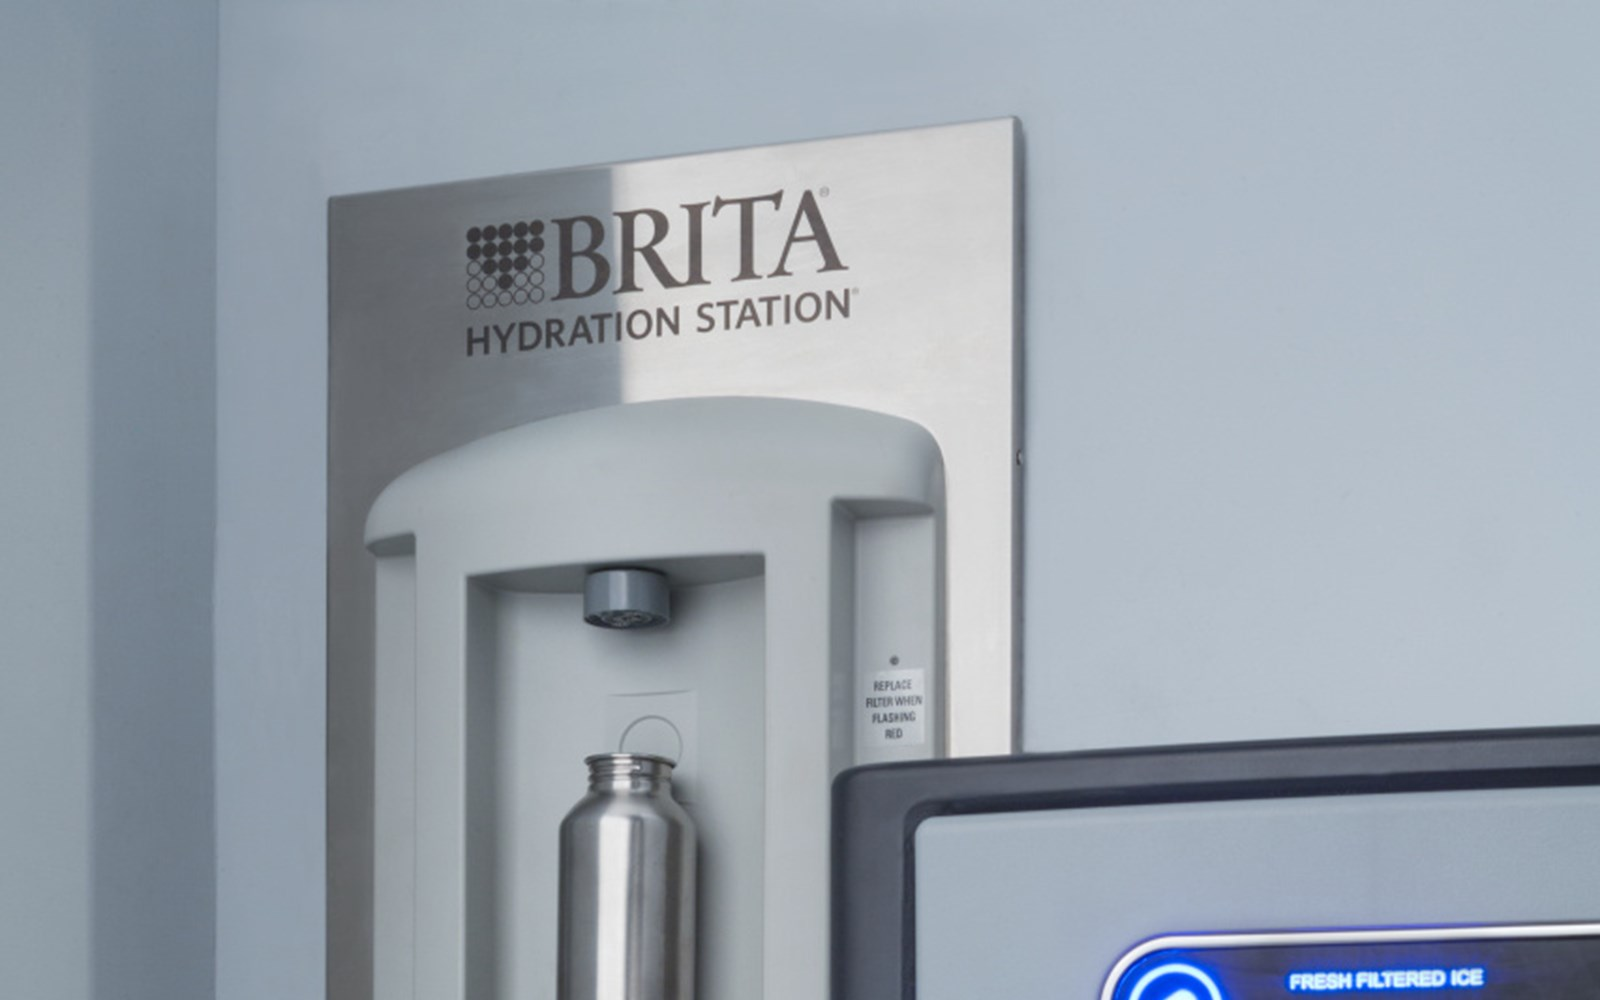 Brita water filtering station and ice makerDo not need to confirm Brita logo usage.